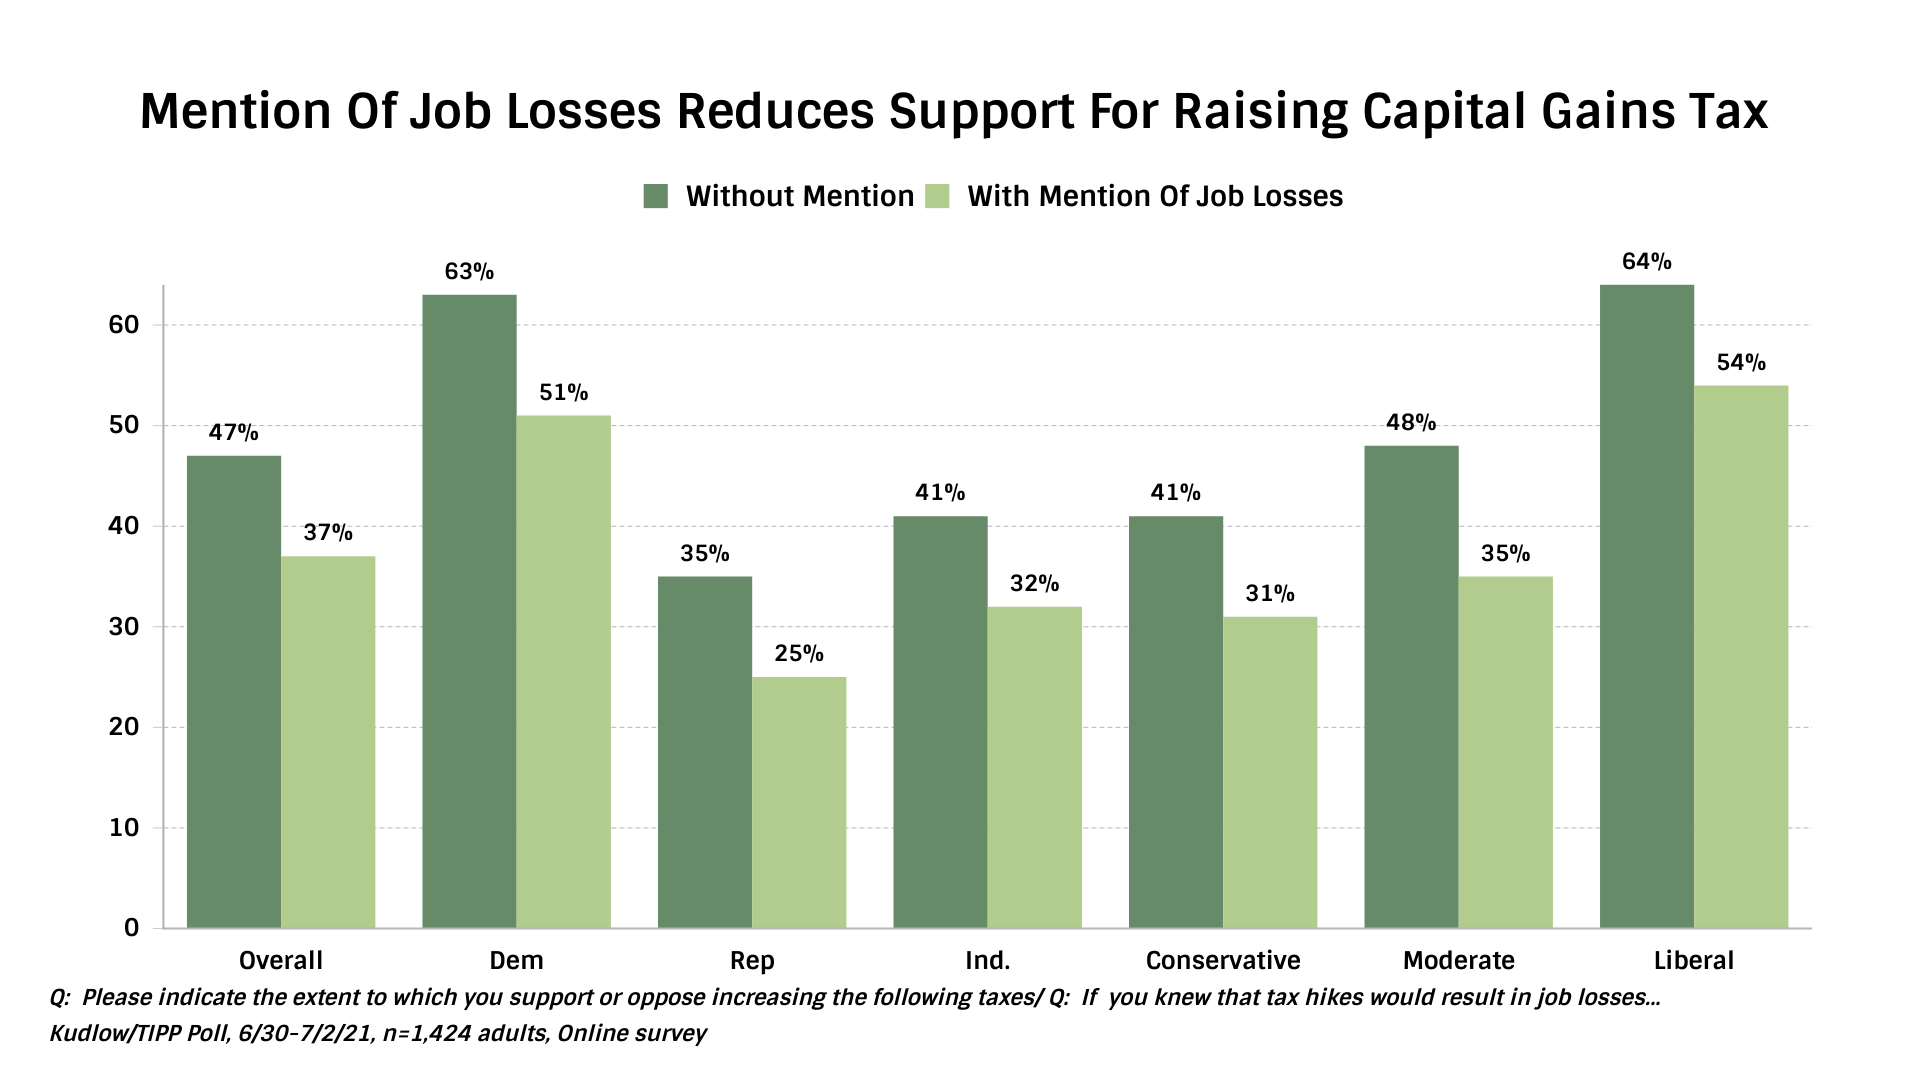 IBD/TIPP Mention of Job Losses Reducing Support For Raising Capital Gains Tax